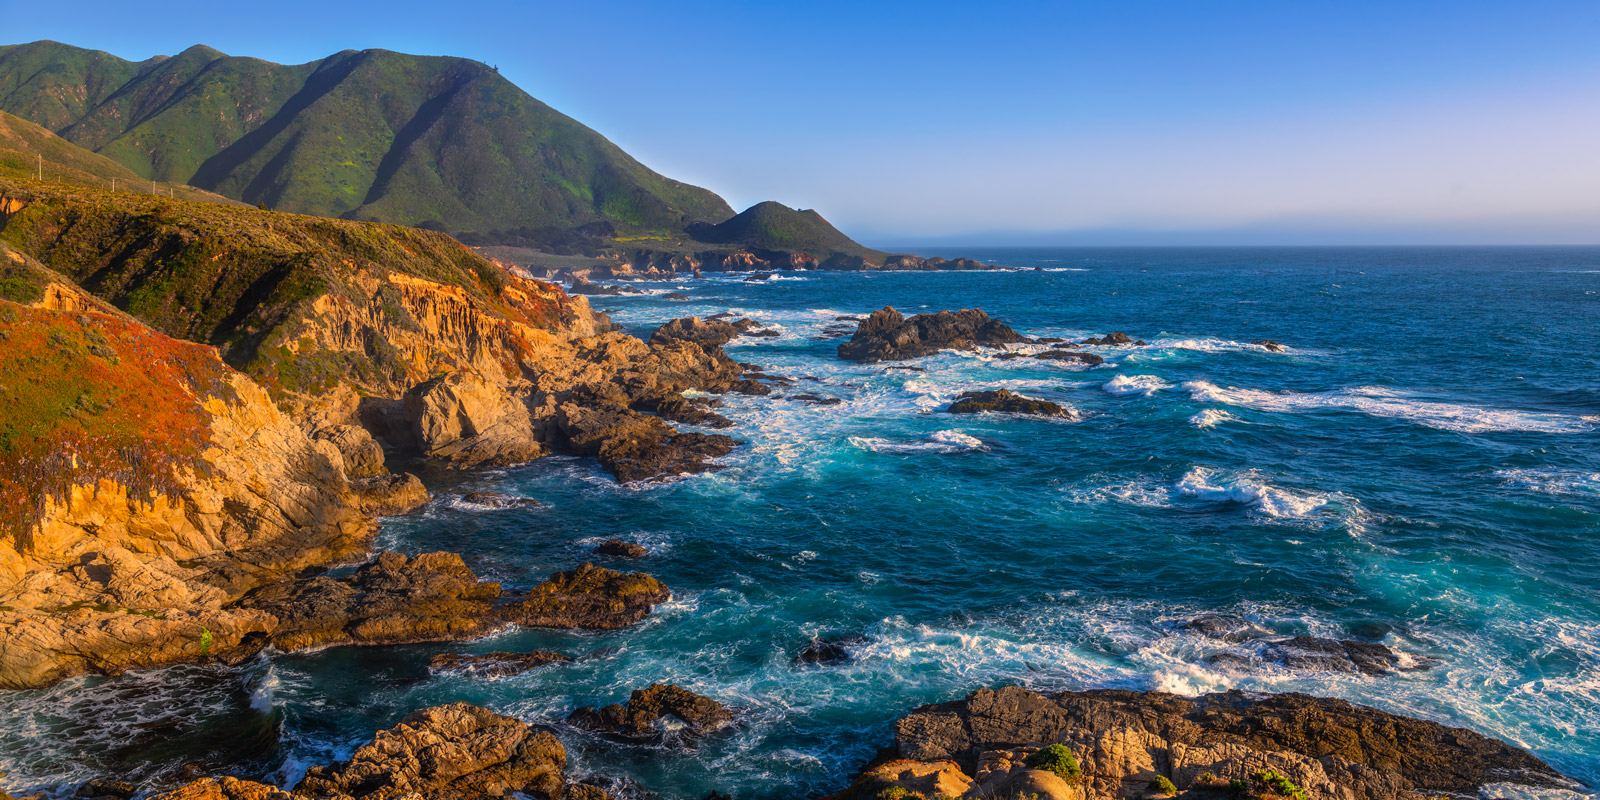 A Limited Edition, Fine Art panoramic photograph of late afternoon on the Big Sur Coast in California. Available as a Fine Art...